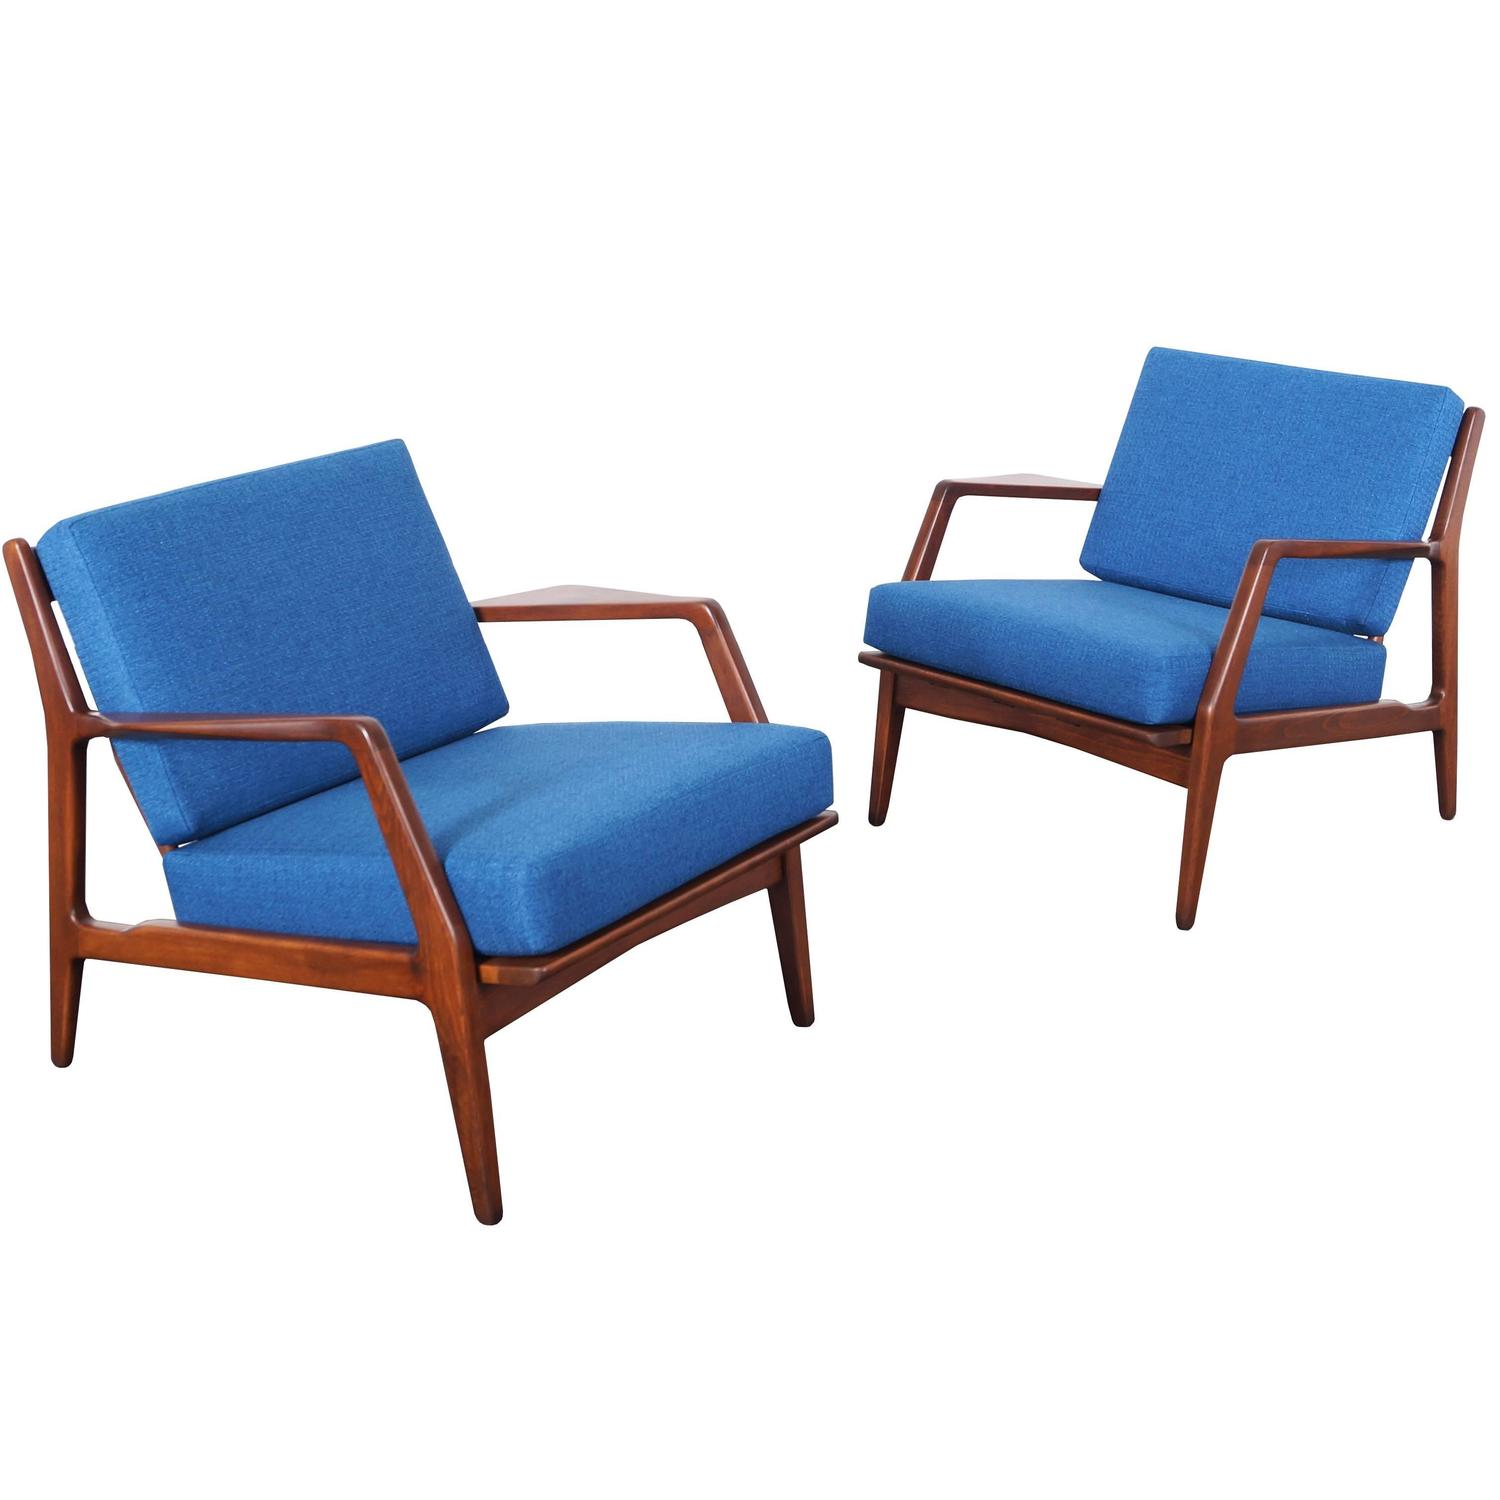 Inspirational mid century modern lounge chair for Stylish lounge furniture